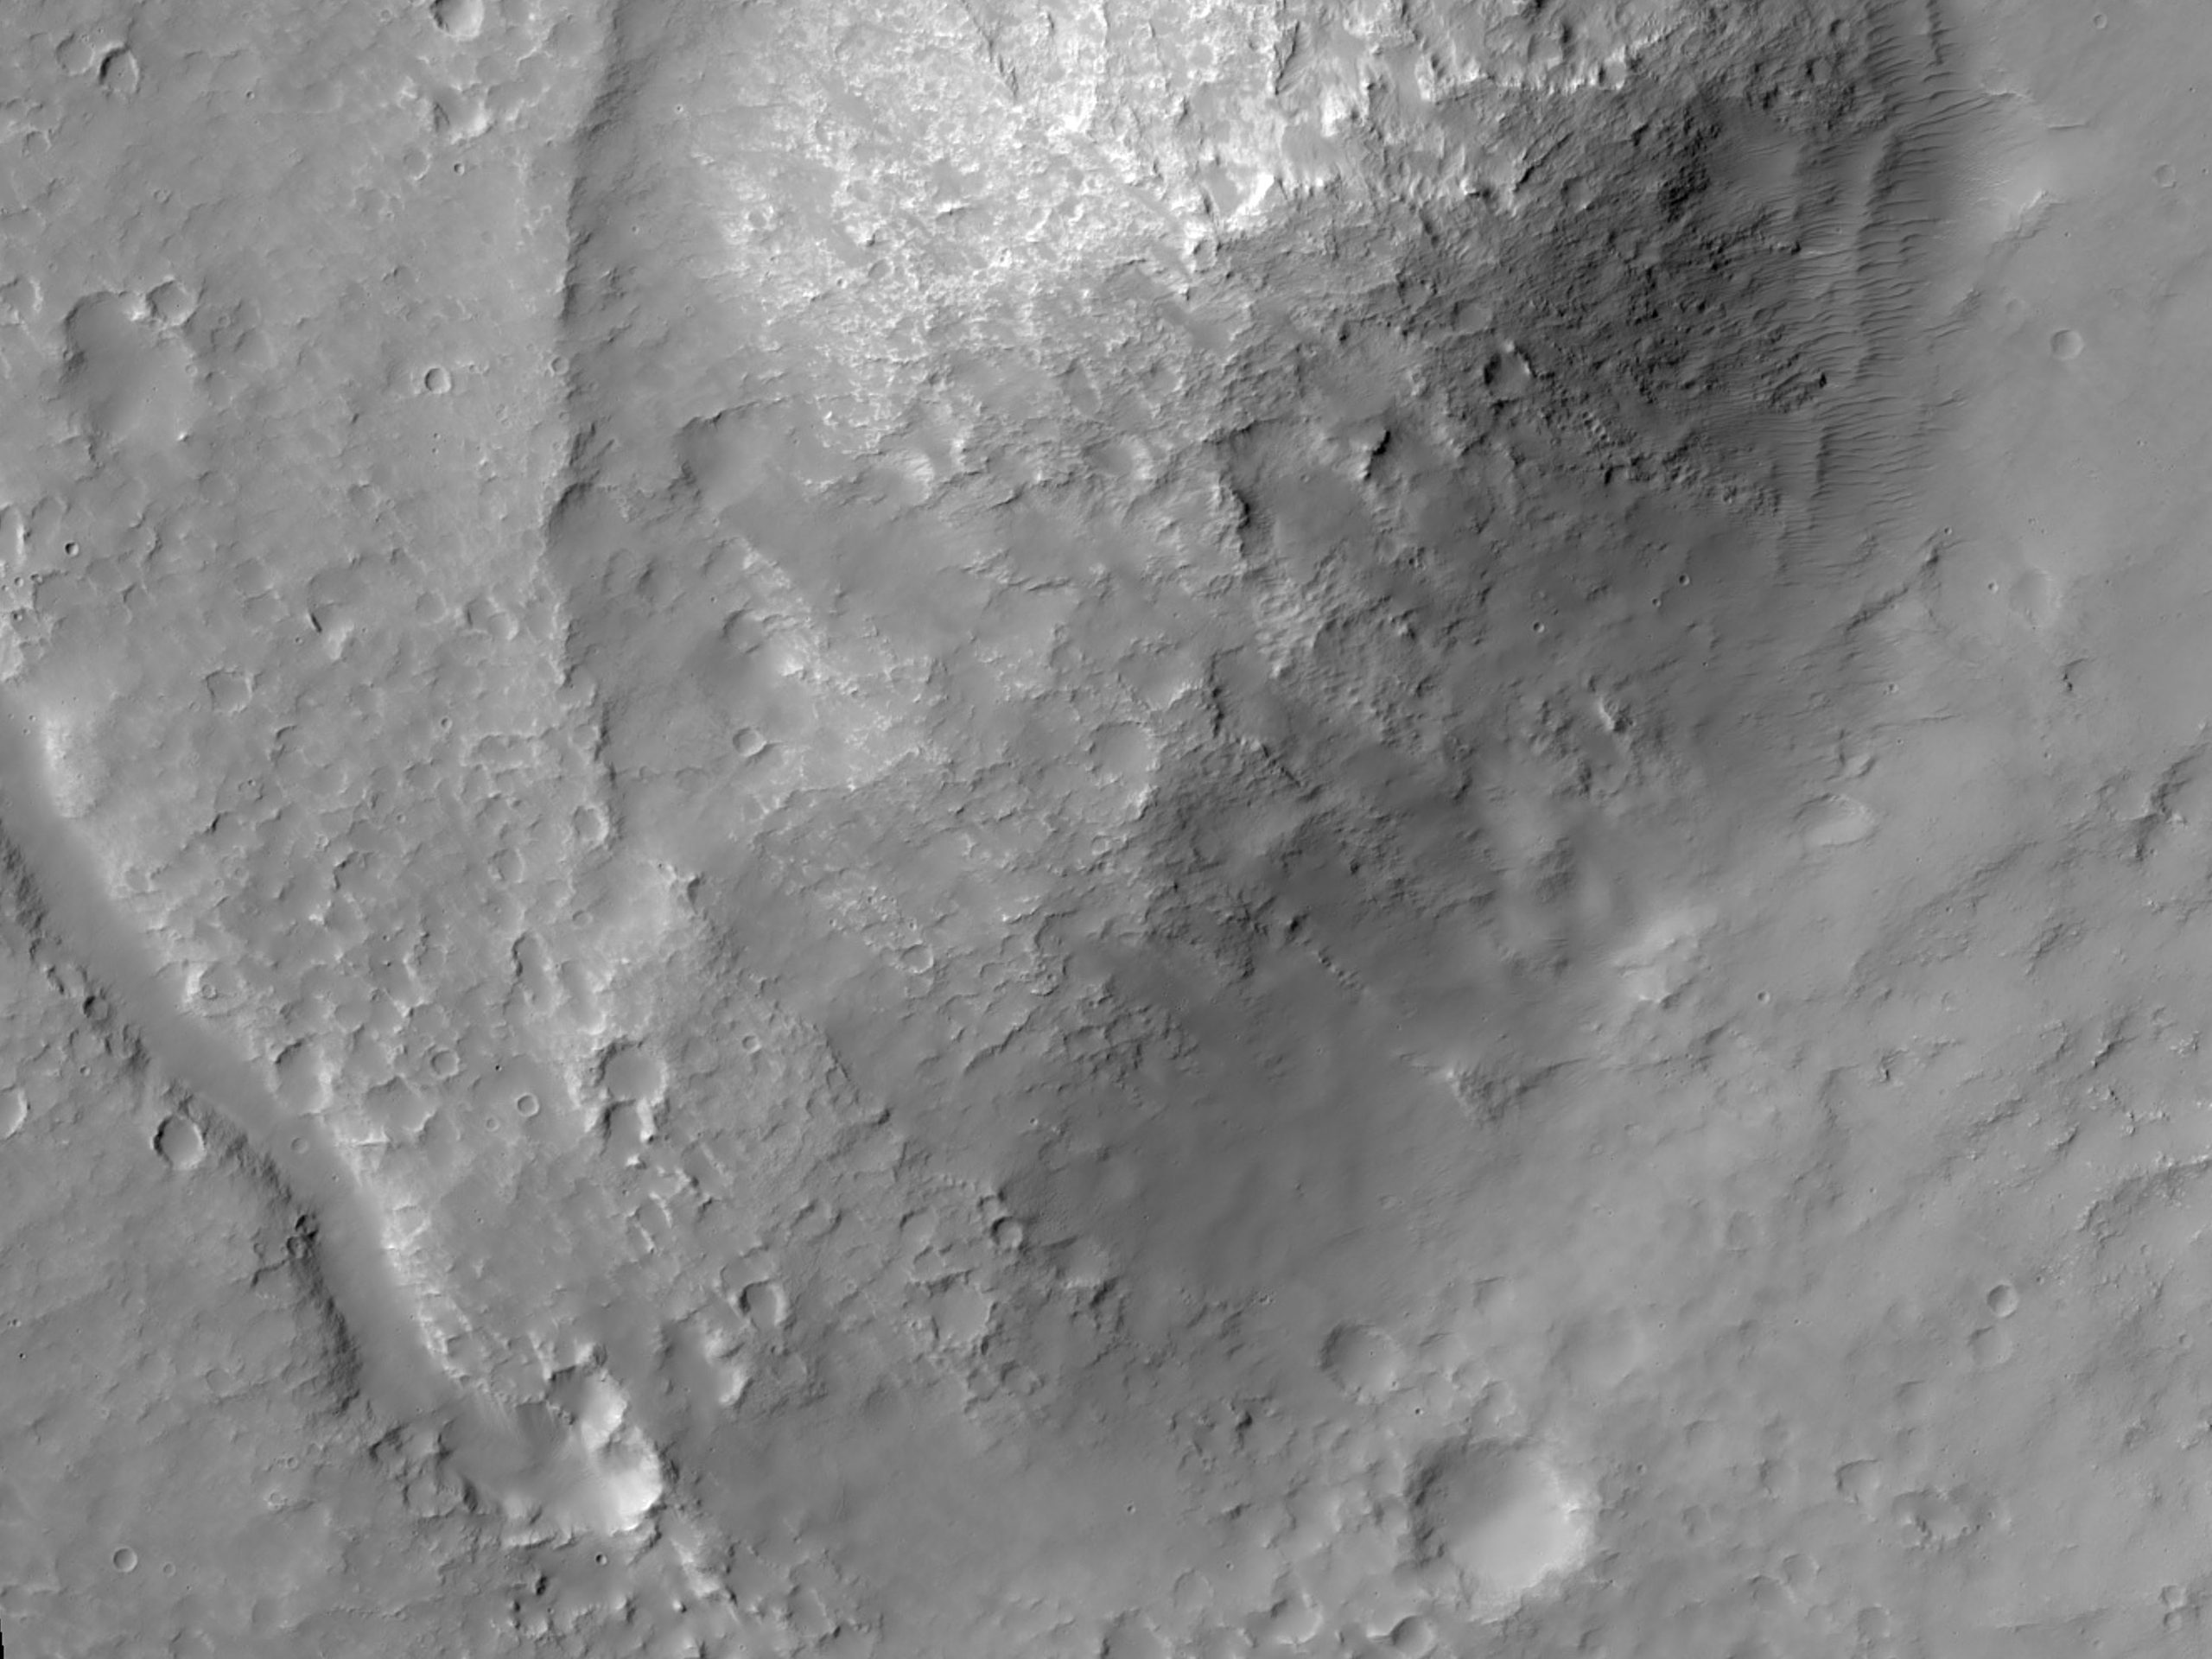 Channel Near Mound North of Hellas Planitia